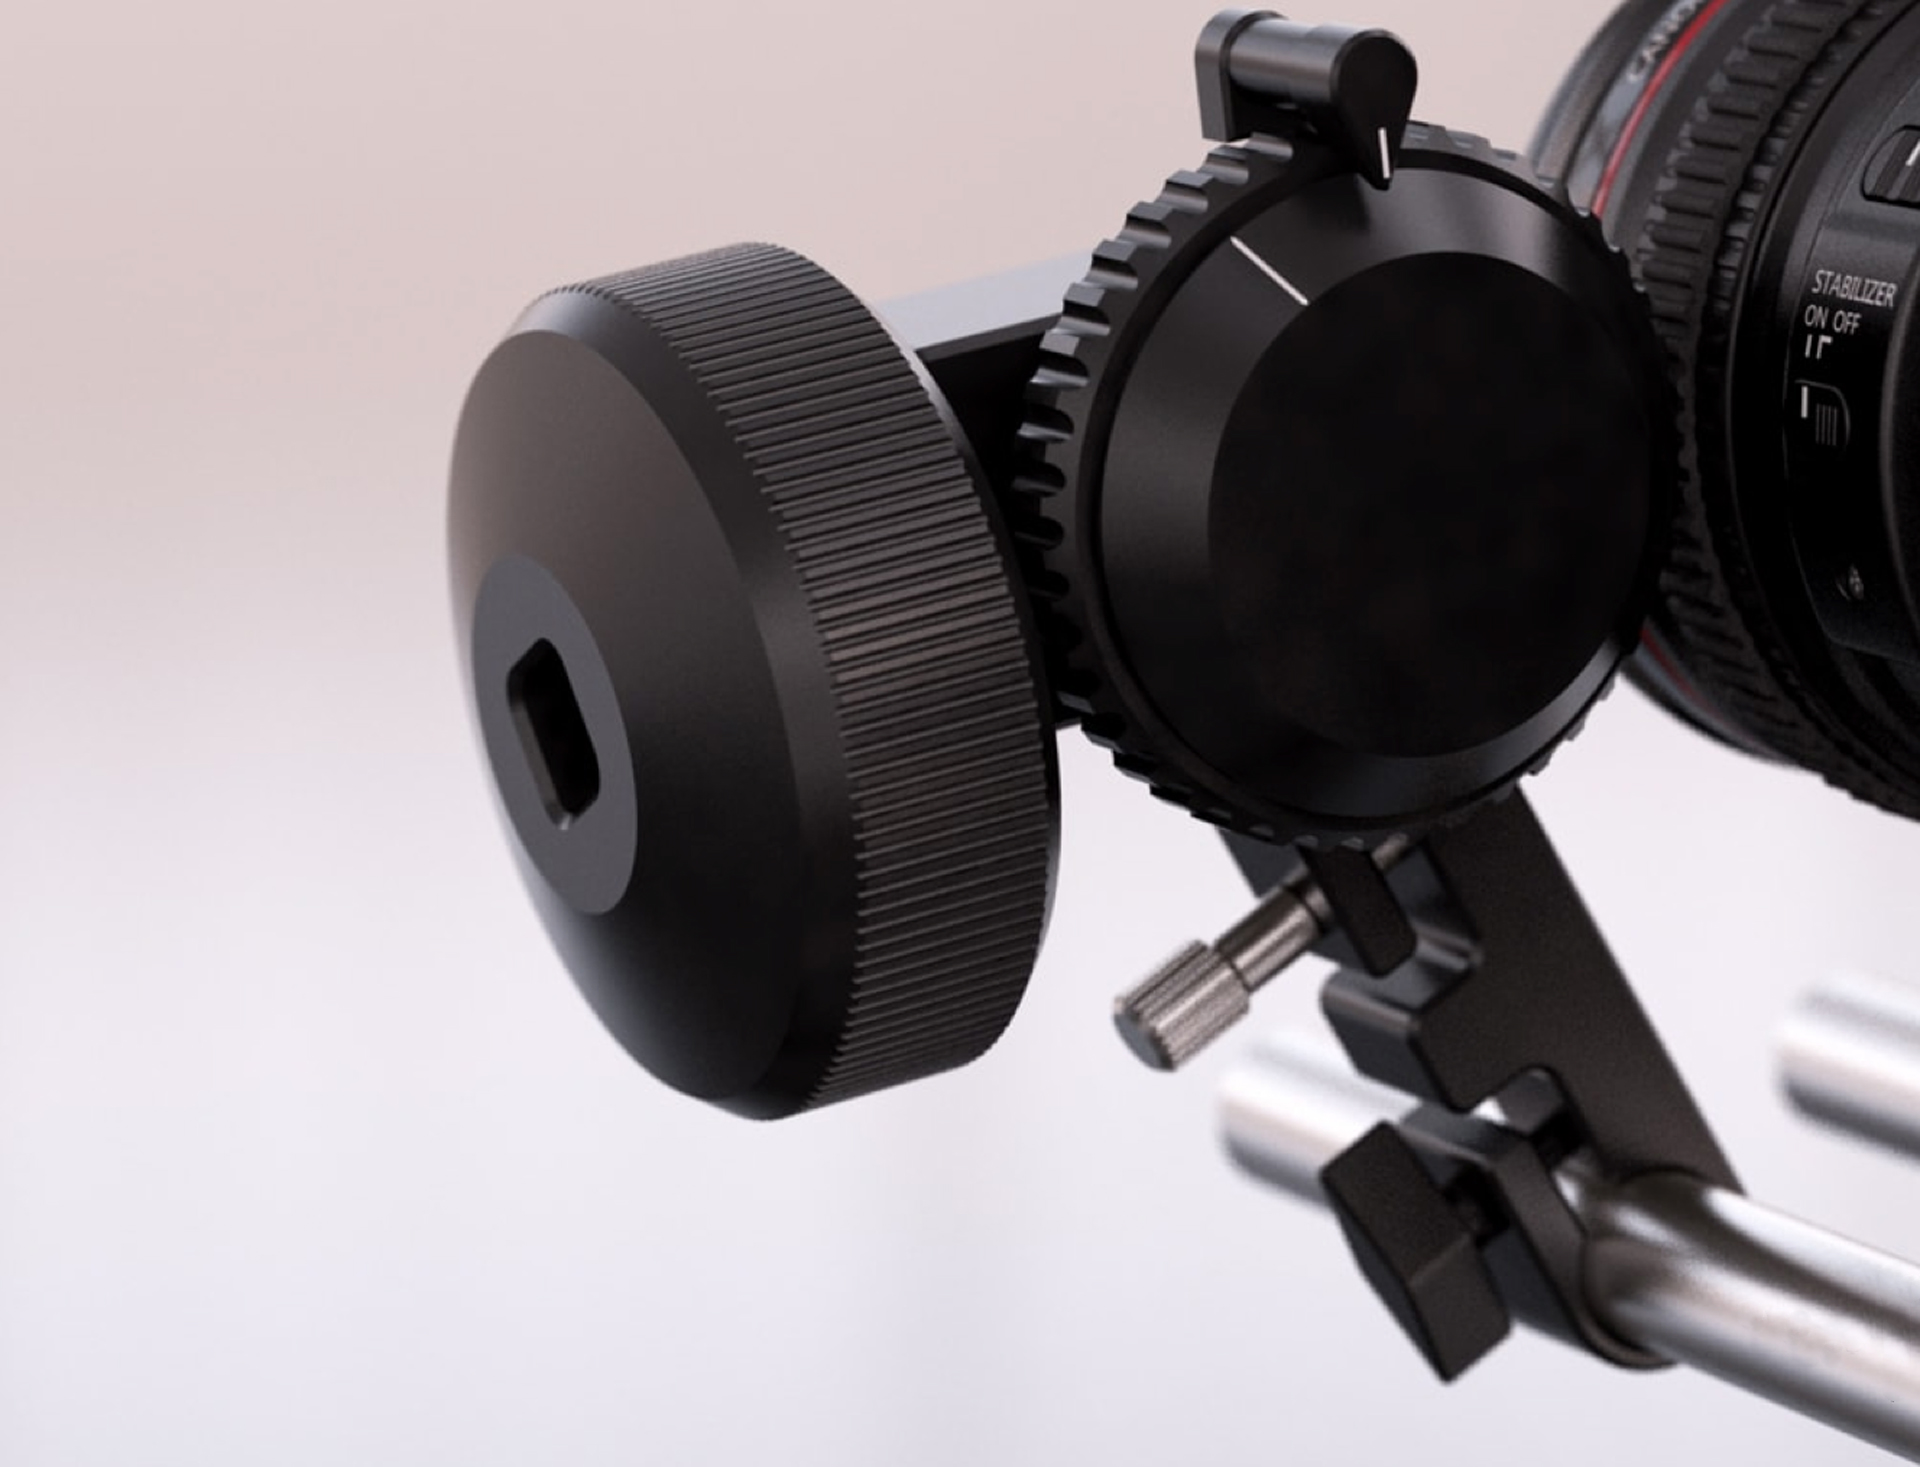 Edelkrone Focus One